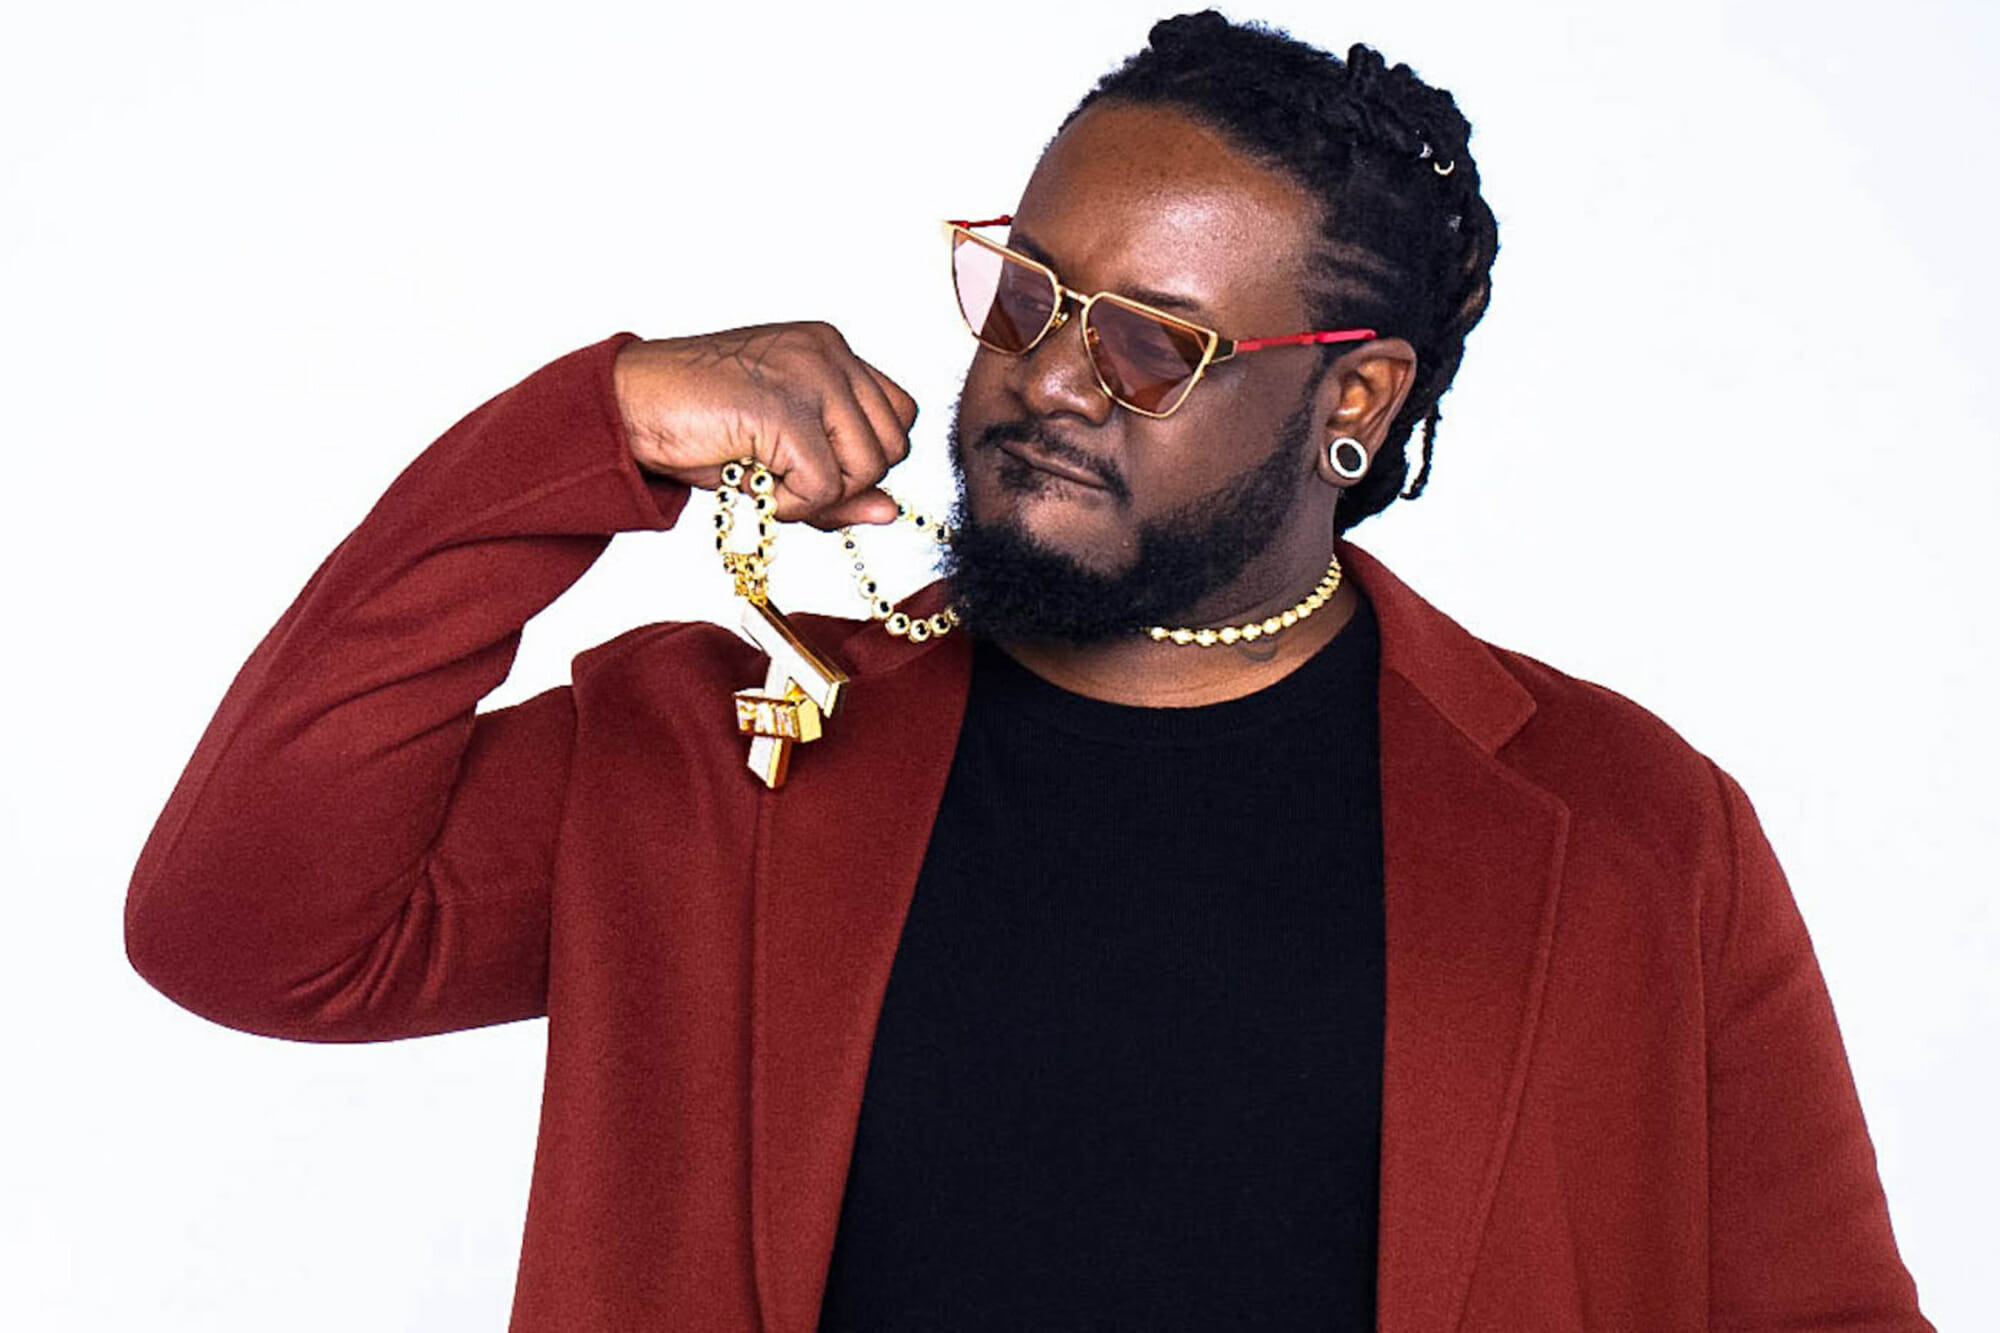 T-Pain scours Twitter to find future bass producer for new album, eager responses ensueT Pain Future Bass